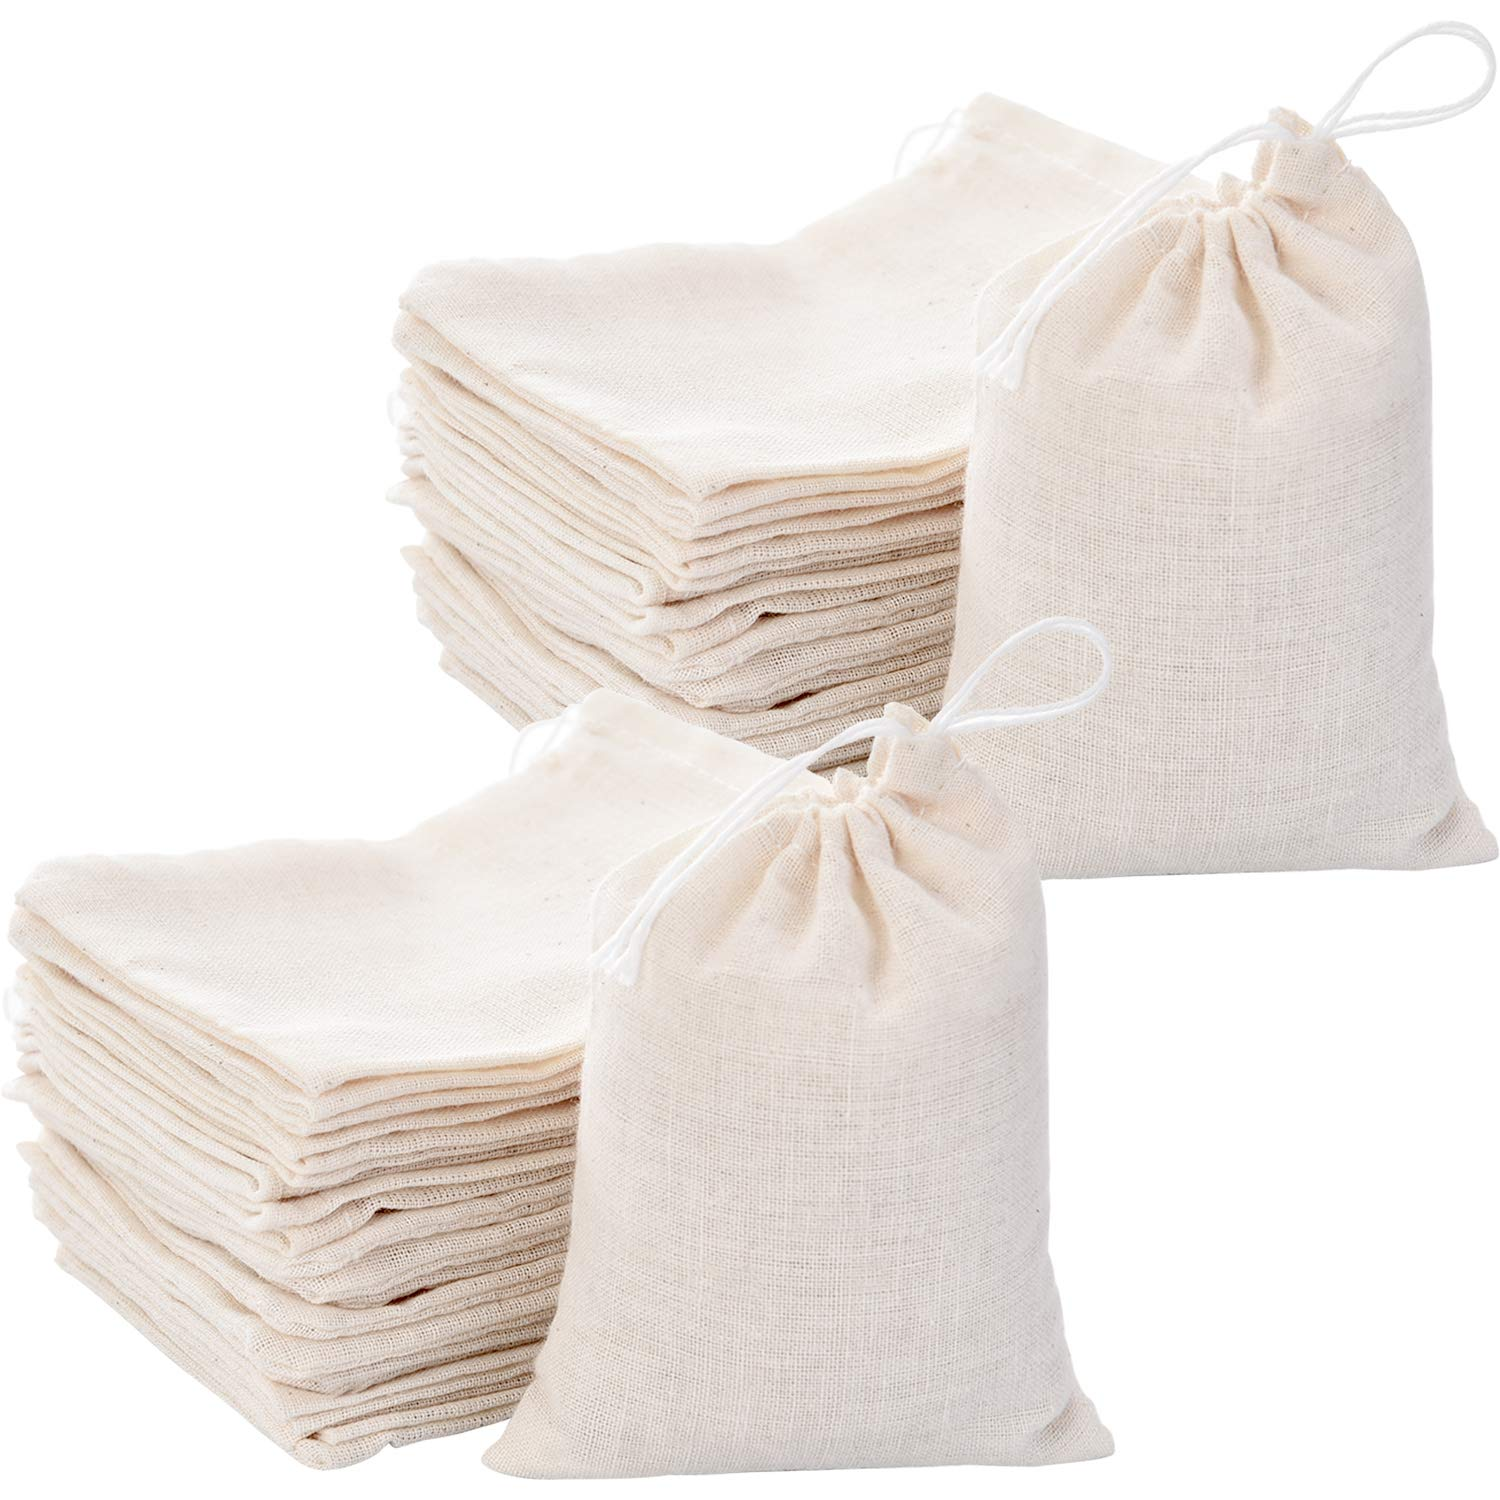 Tatuo 200 Pack Cotton Muslin Bags Burlap Bags Sachet Bag Multipurpose Drawstring Bags for Tea Jewelry Wedding Party Favors Storage (3 x 4 Inches)